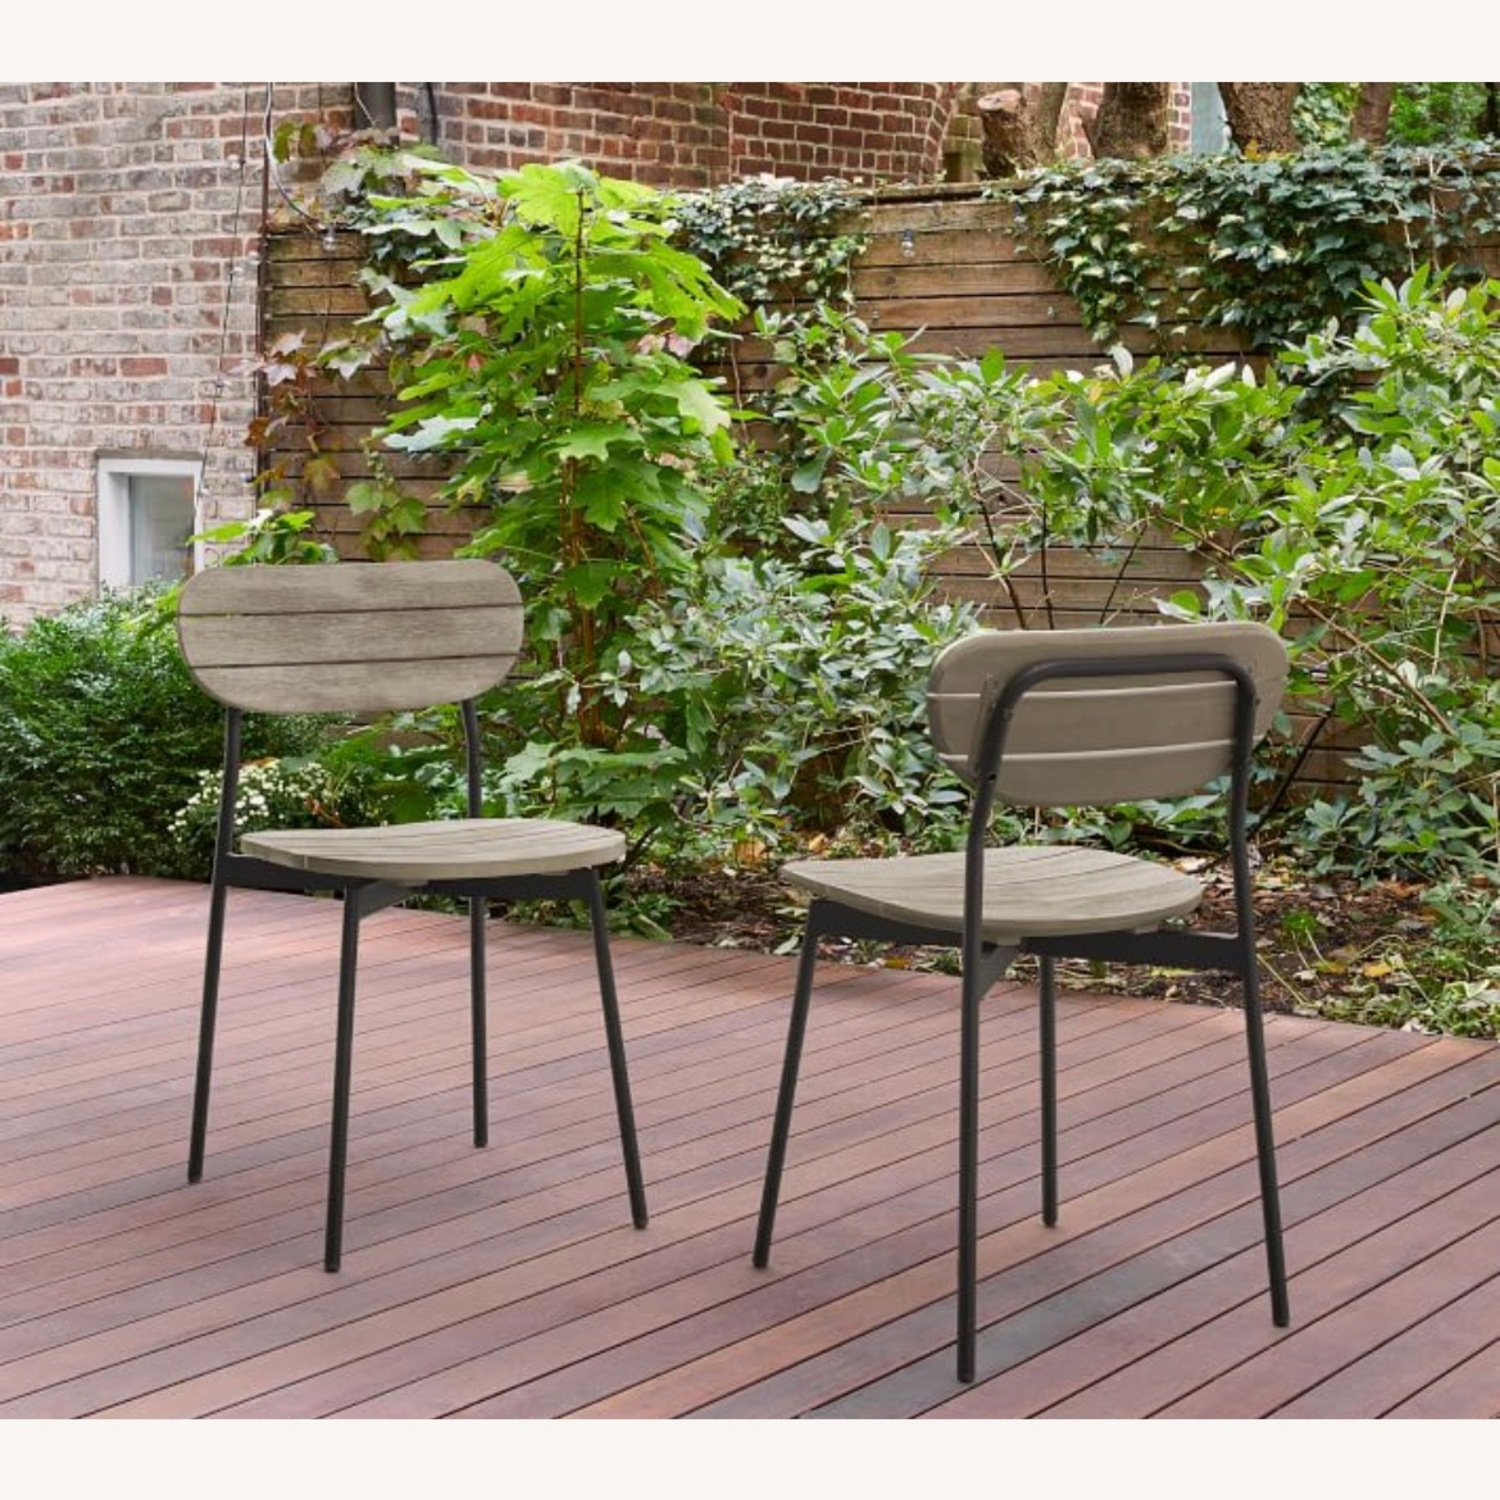 West Elm Frame Outdoor Set of 2 Dining Chairs - image-2